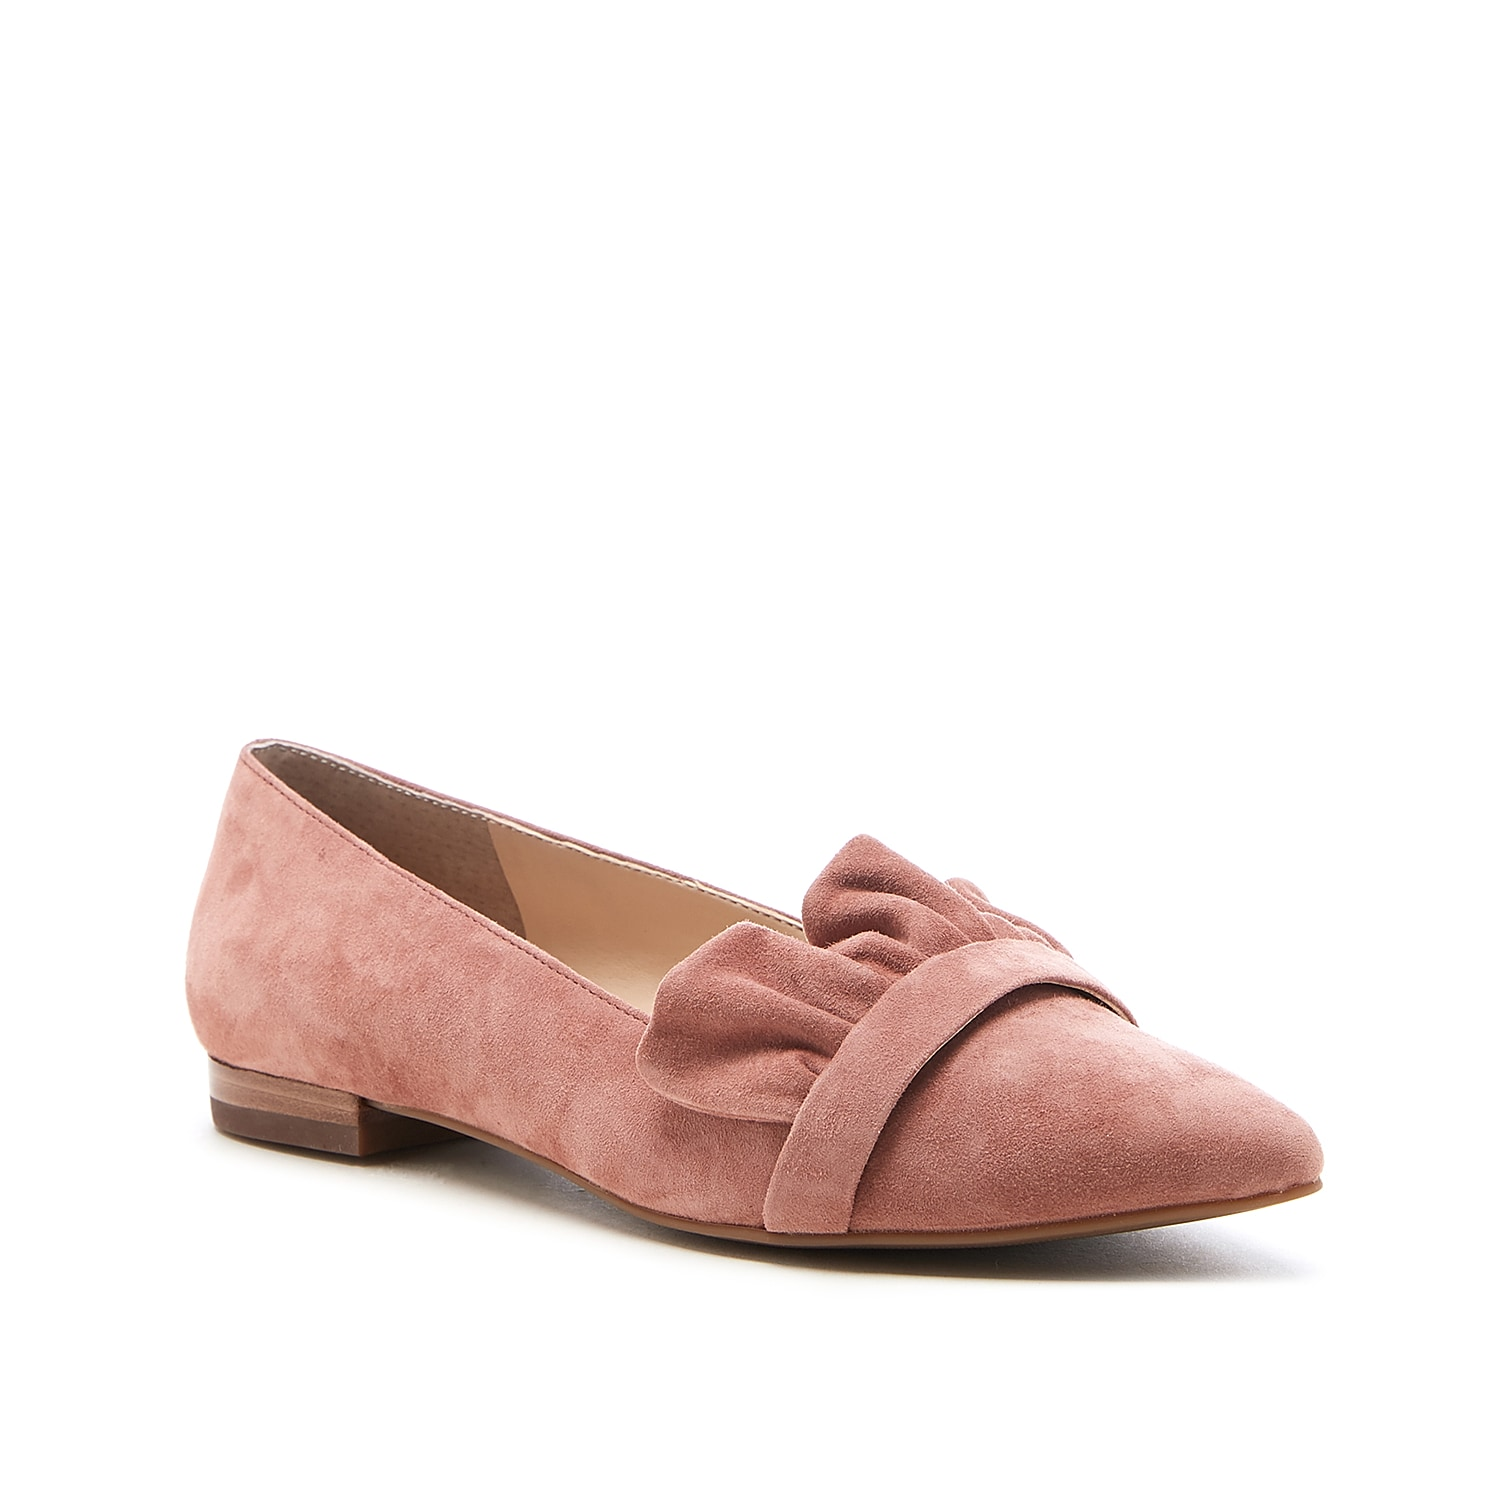 It\\\'s all feminine and fabulous in the Kamber loafer from Sole Society. Topped with a coordinating ruffle trim for a standout look, this loafer also has a sleek pointed toe and durable rubber sole with stacked heel.